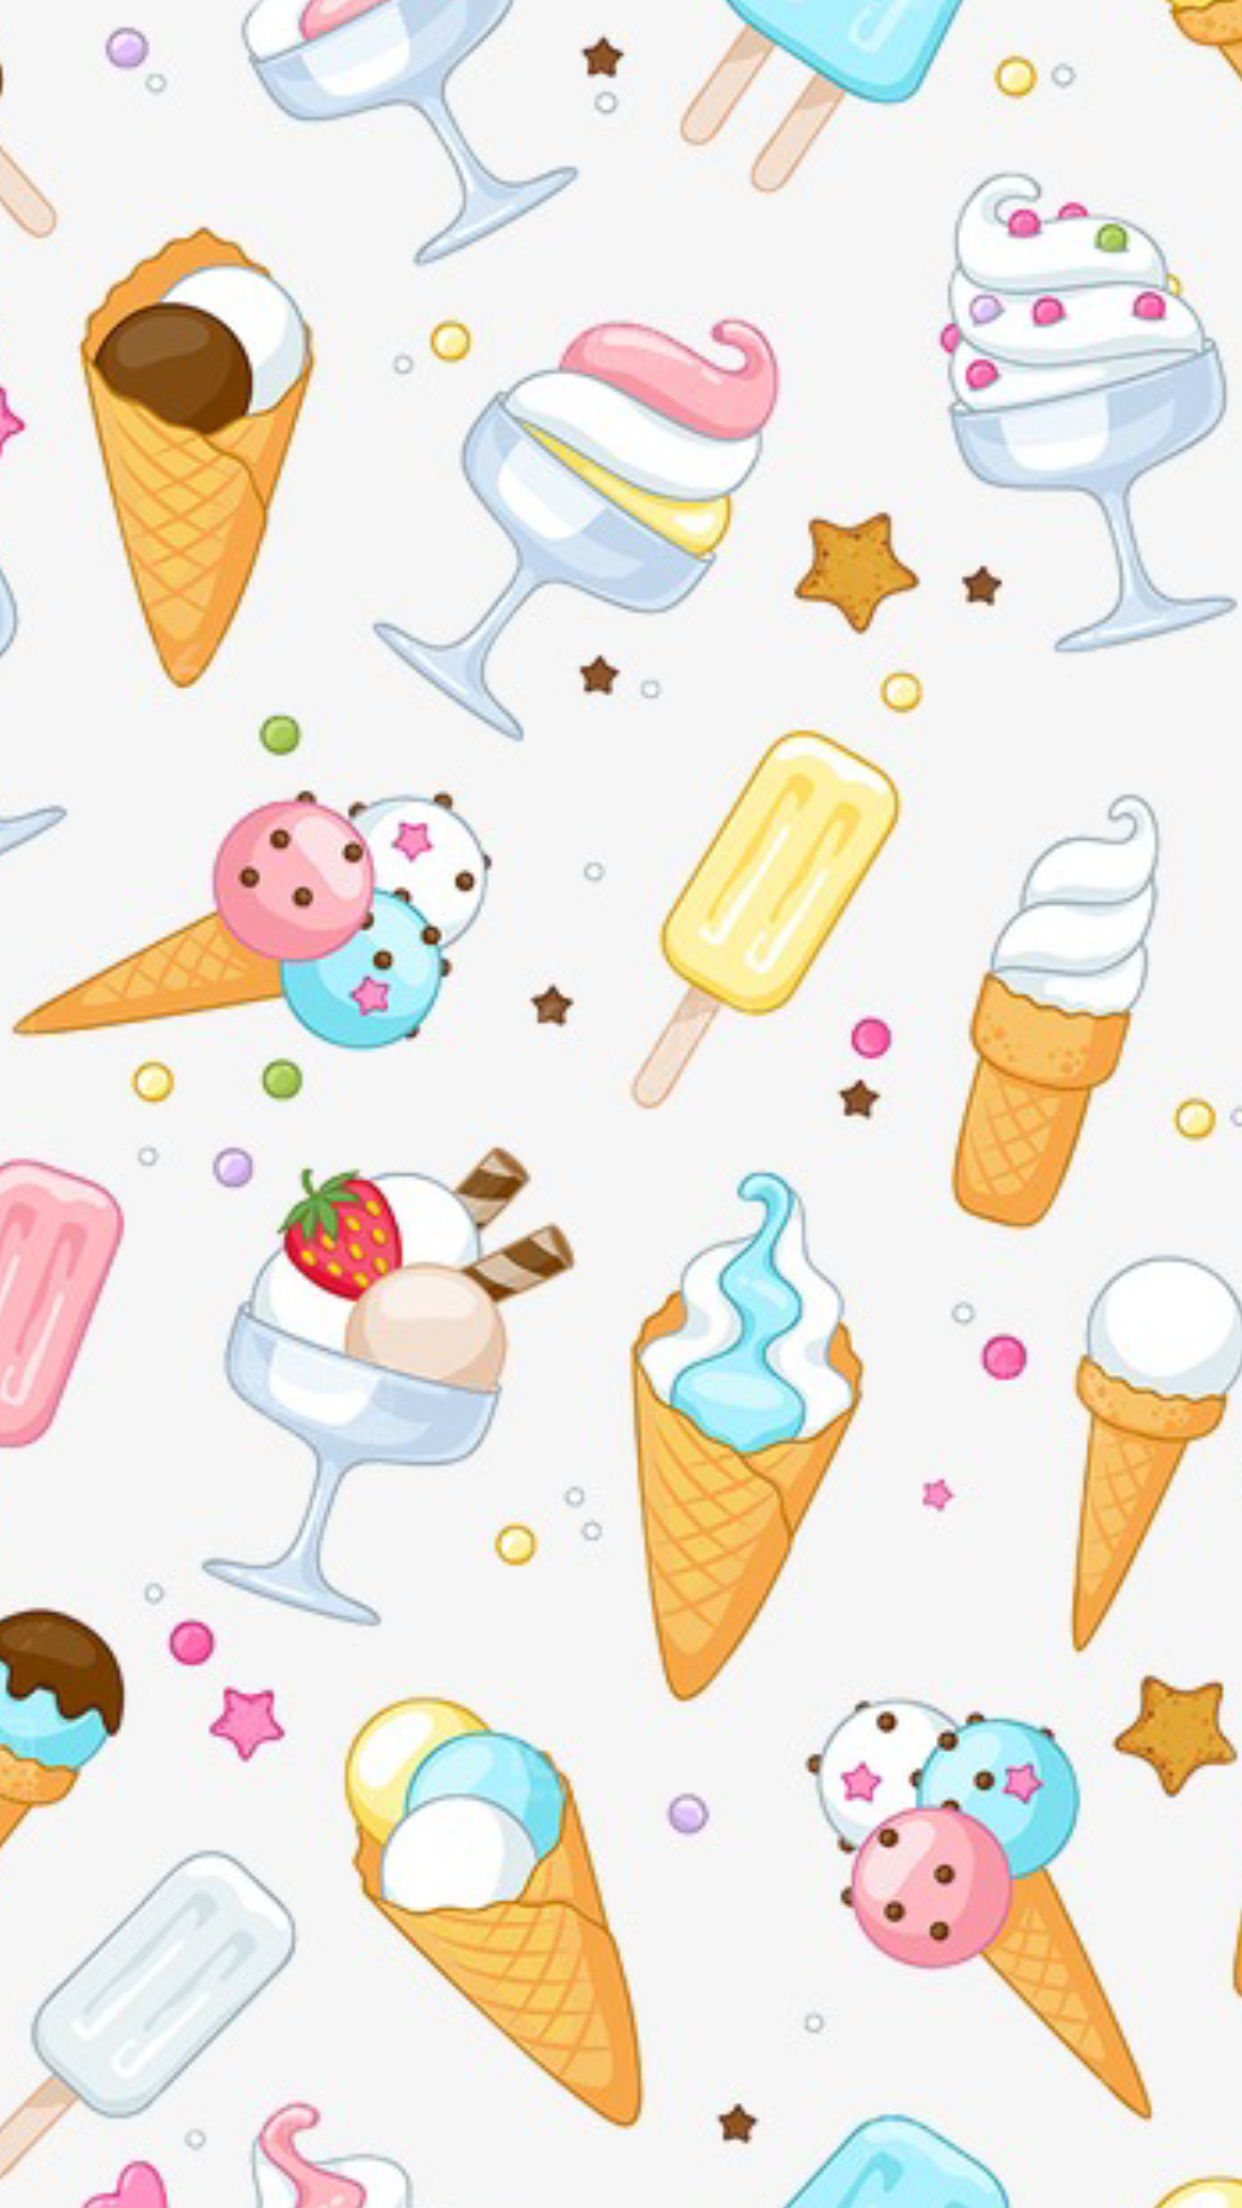 I Love Ice Cream And About You Unicorn Wallpaper Cute Cute Cartoon Wallpapers Cute Wallpapers